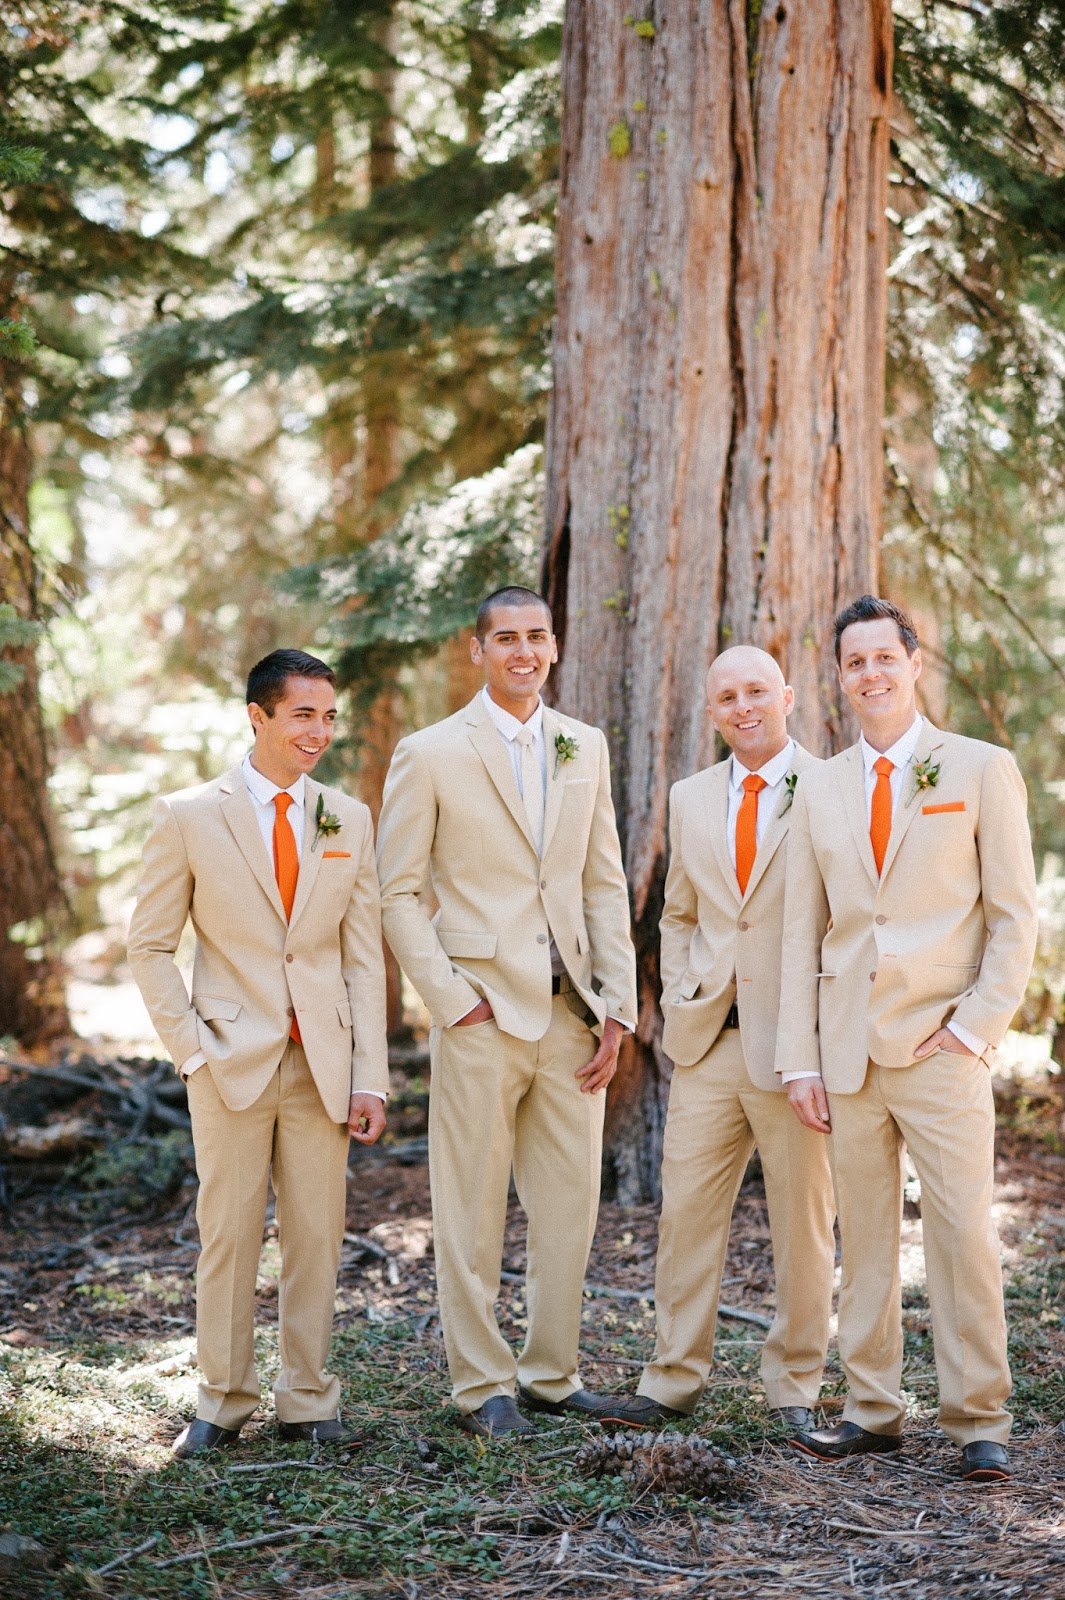 Fall groomsmen with orange accents // Acres of Hope Photography // Take the Cake Event Planning